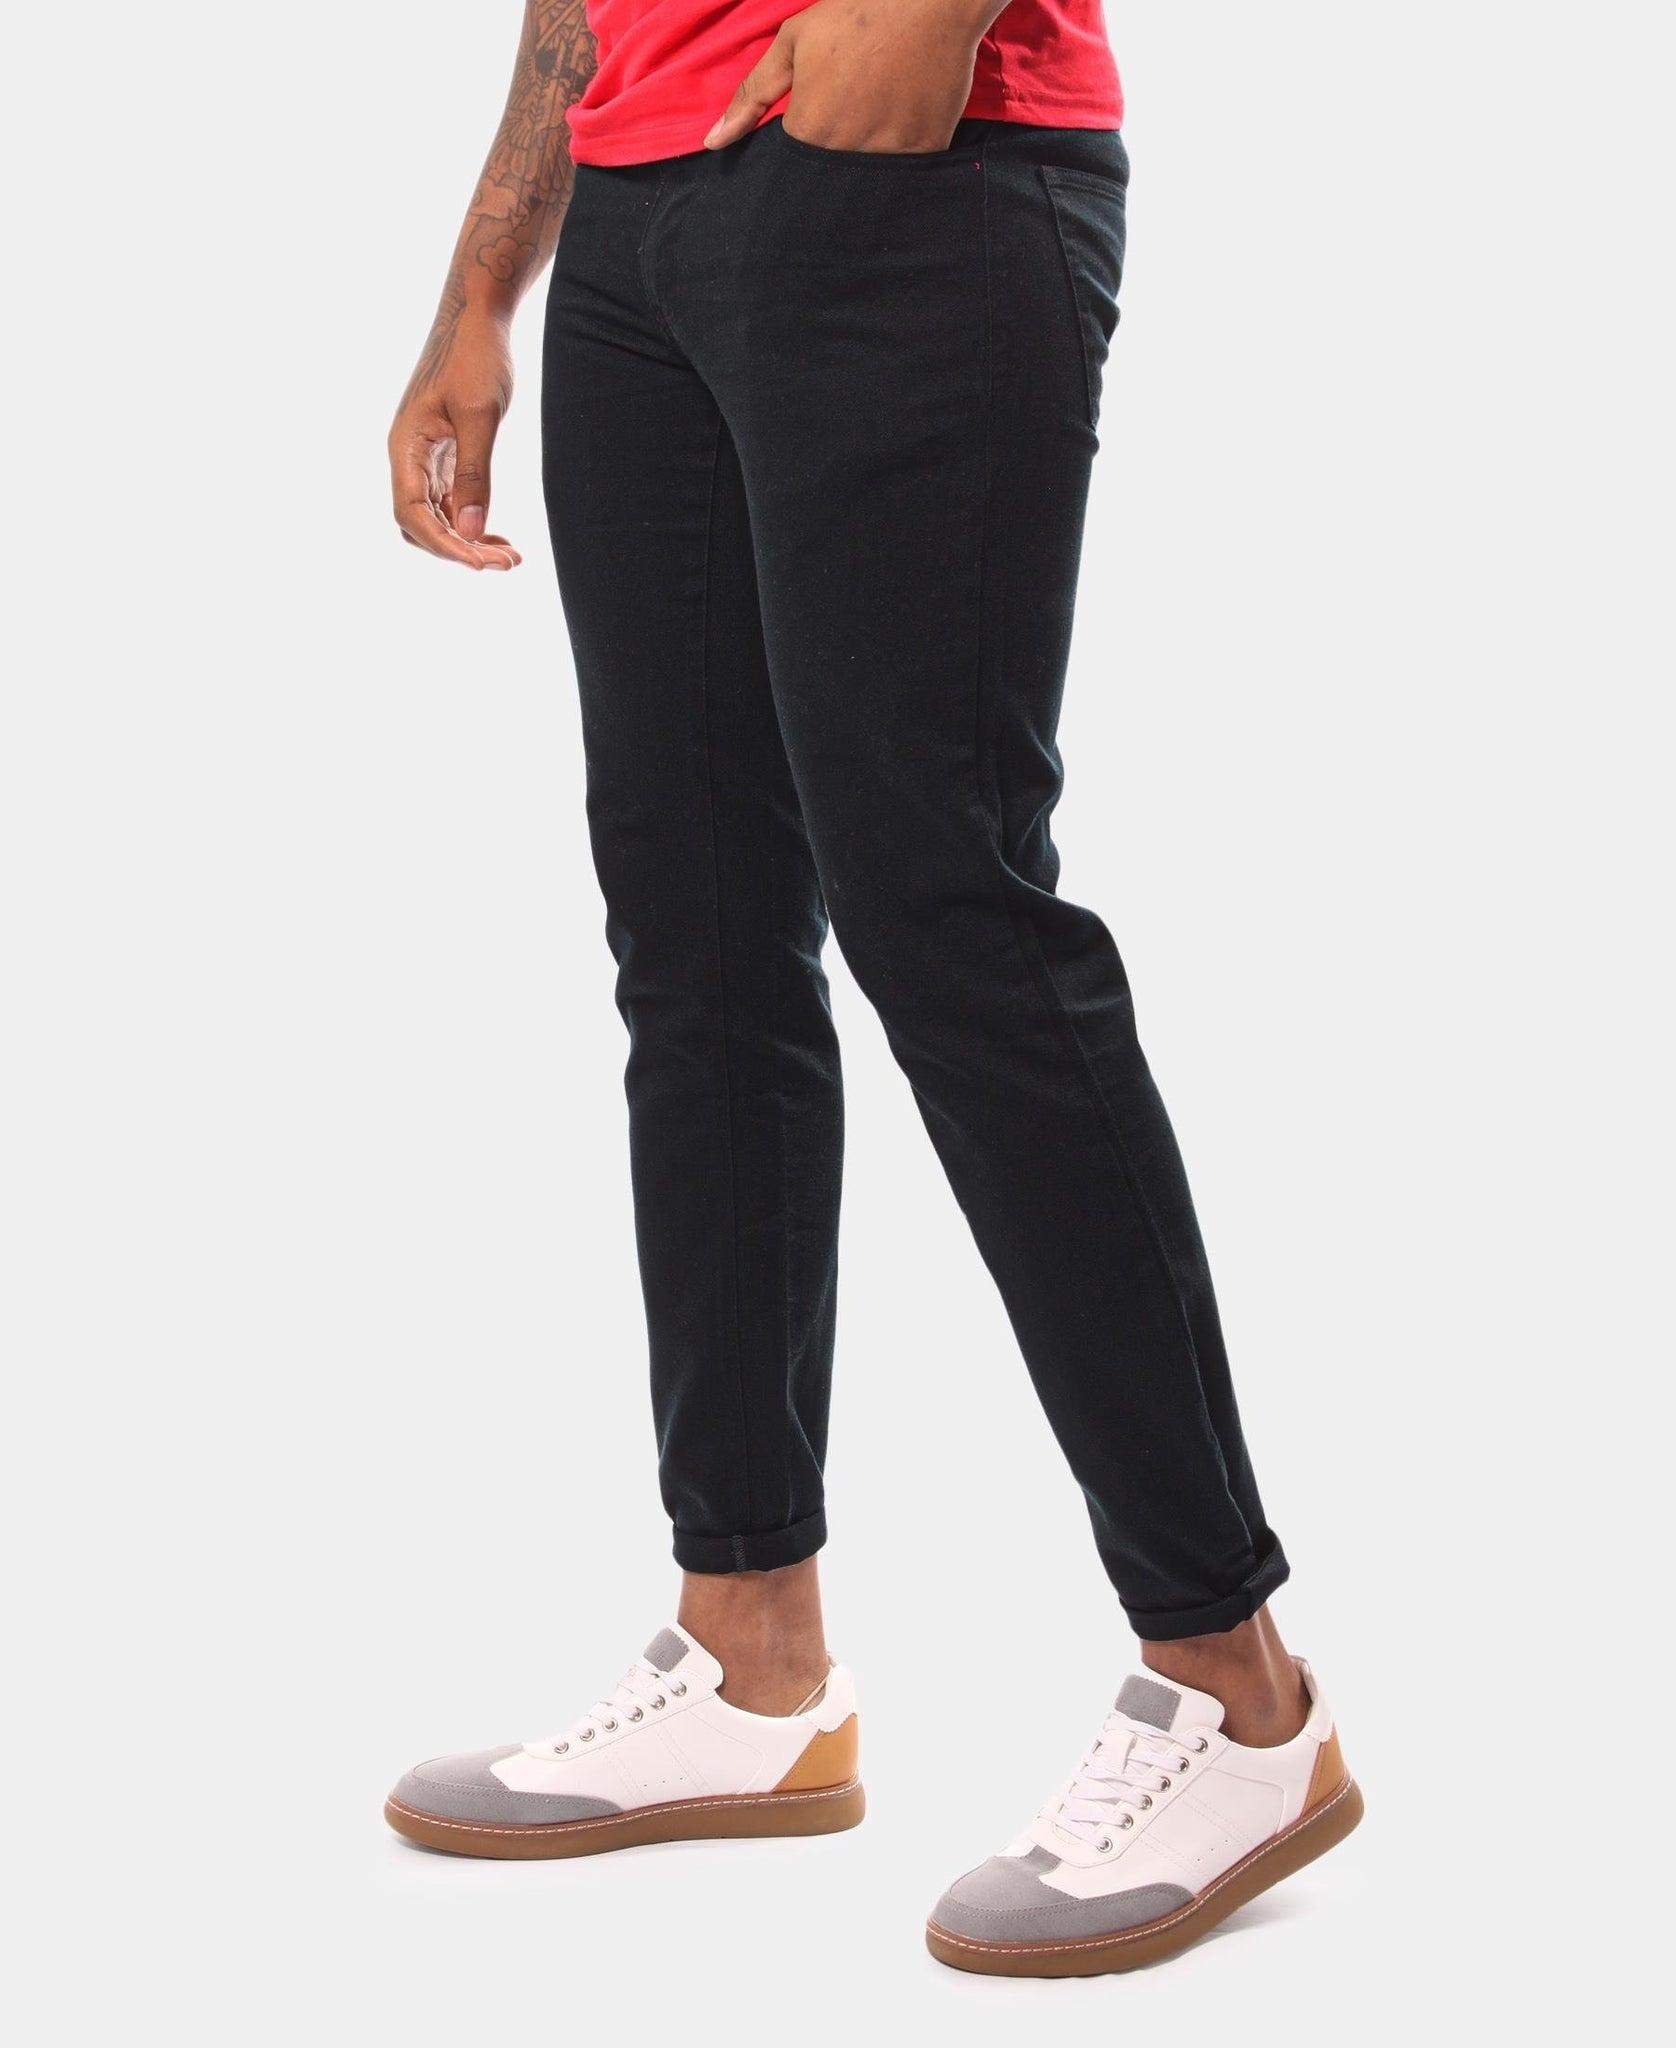 Men's Casual Pants - Black